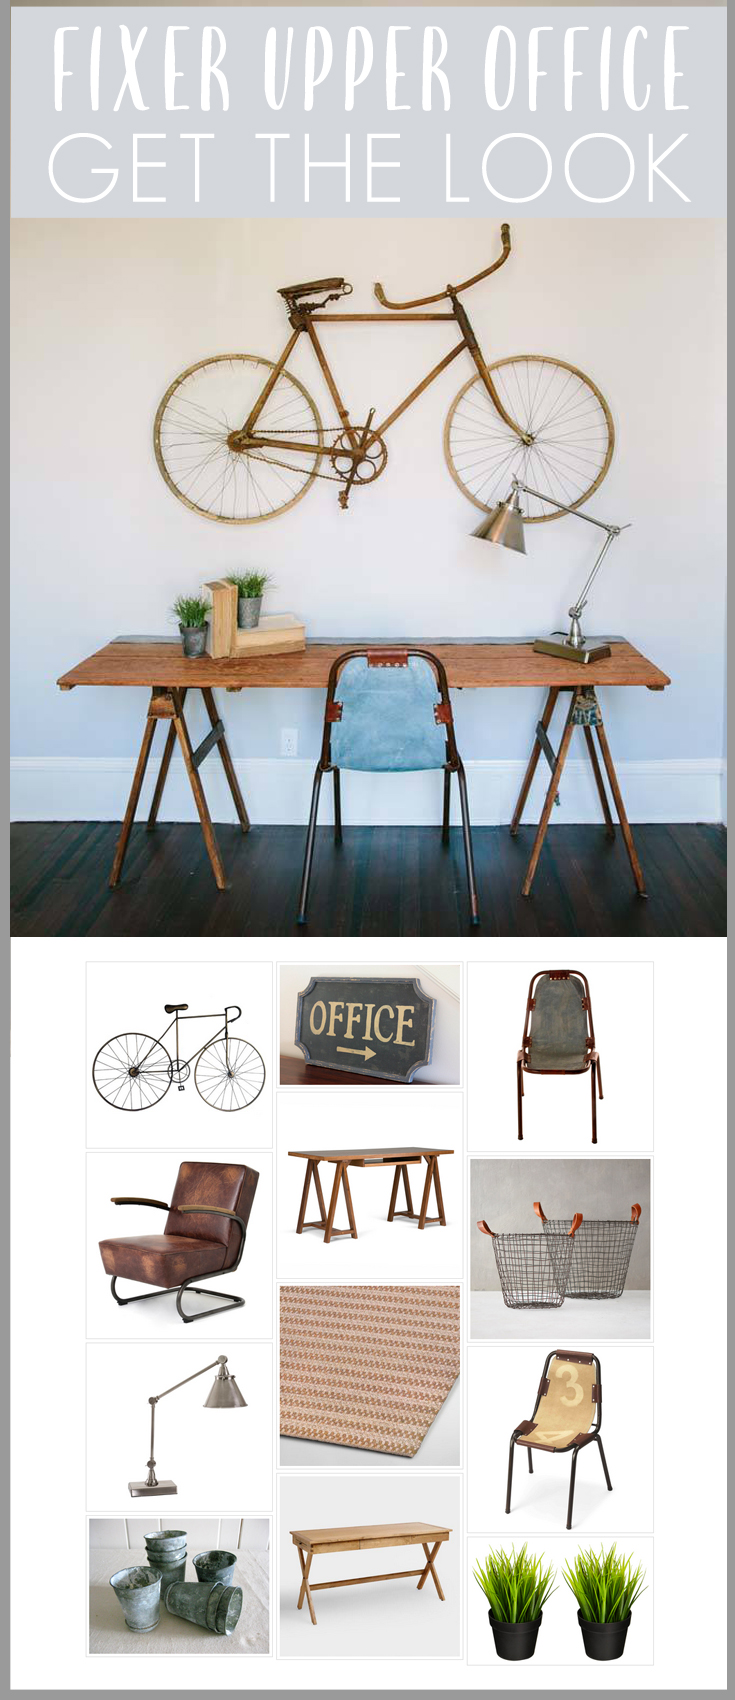 Fixer Upper Season 1 Episode 12 Office room recreation! Full list of decor sources for the 5th Street Story!